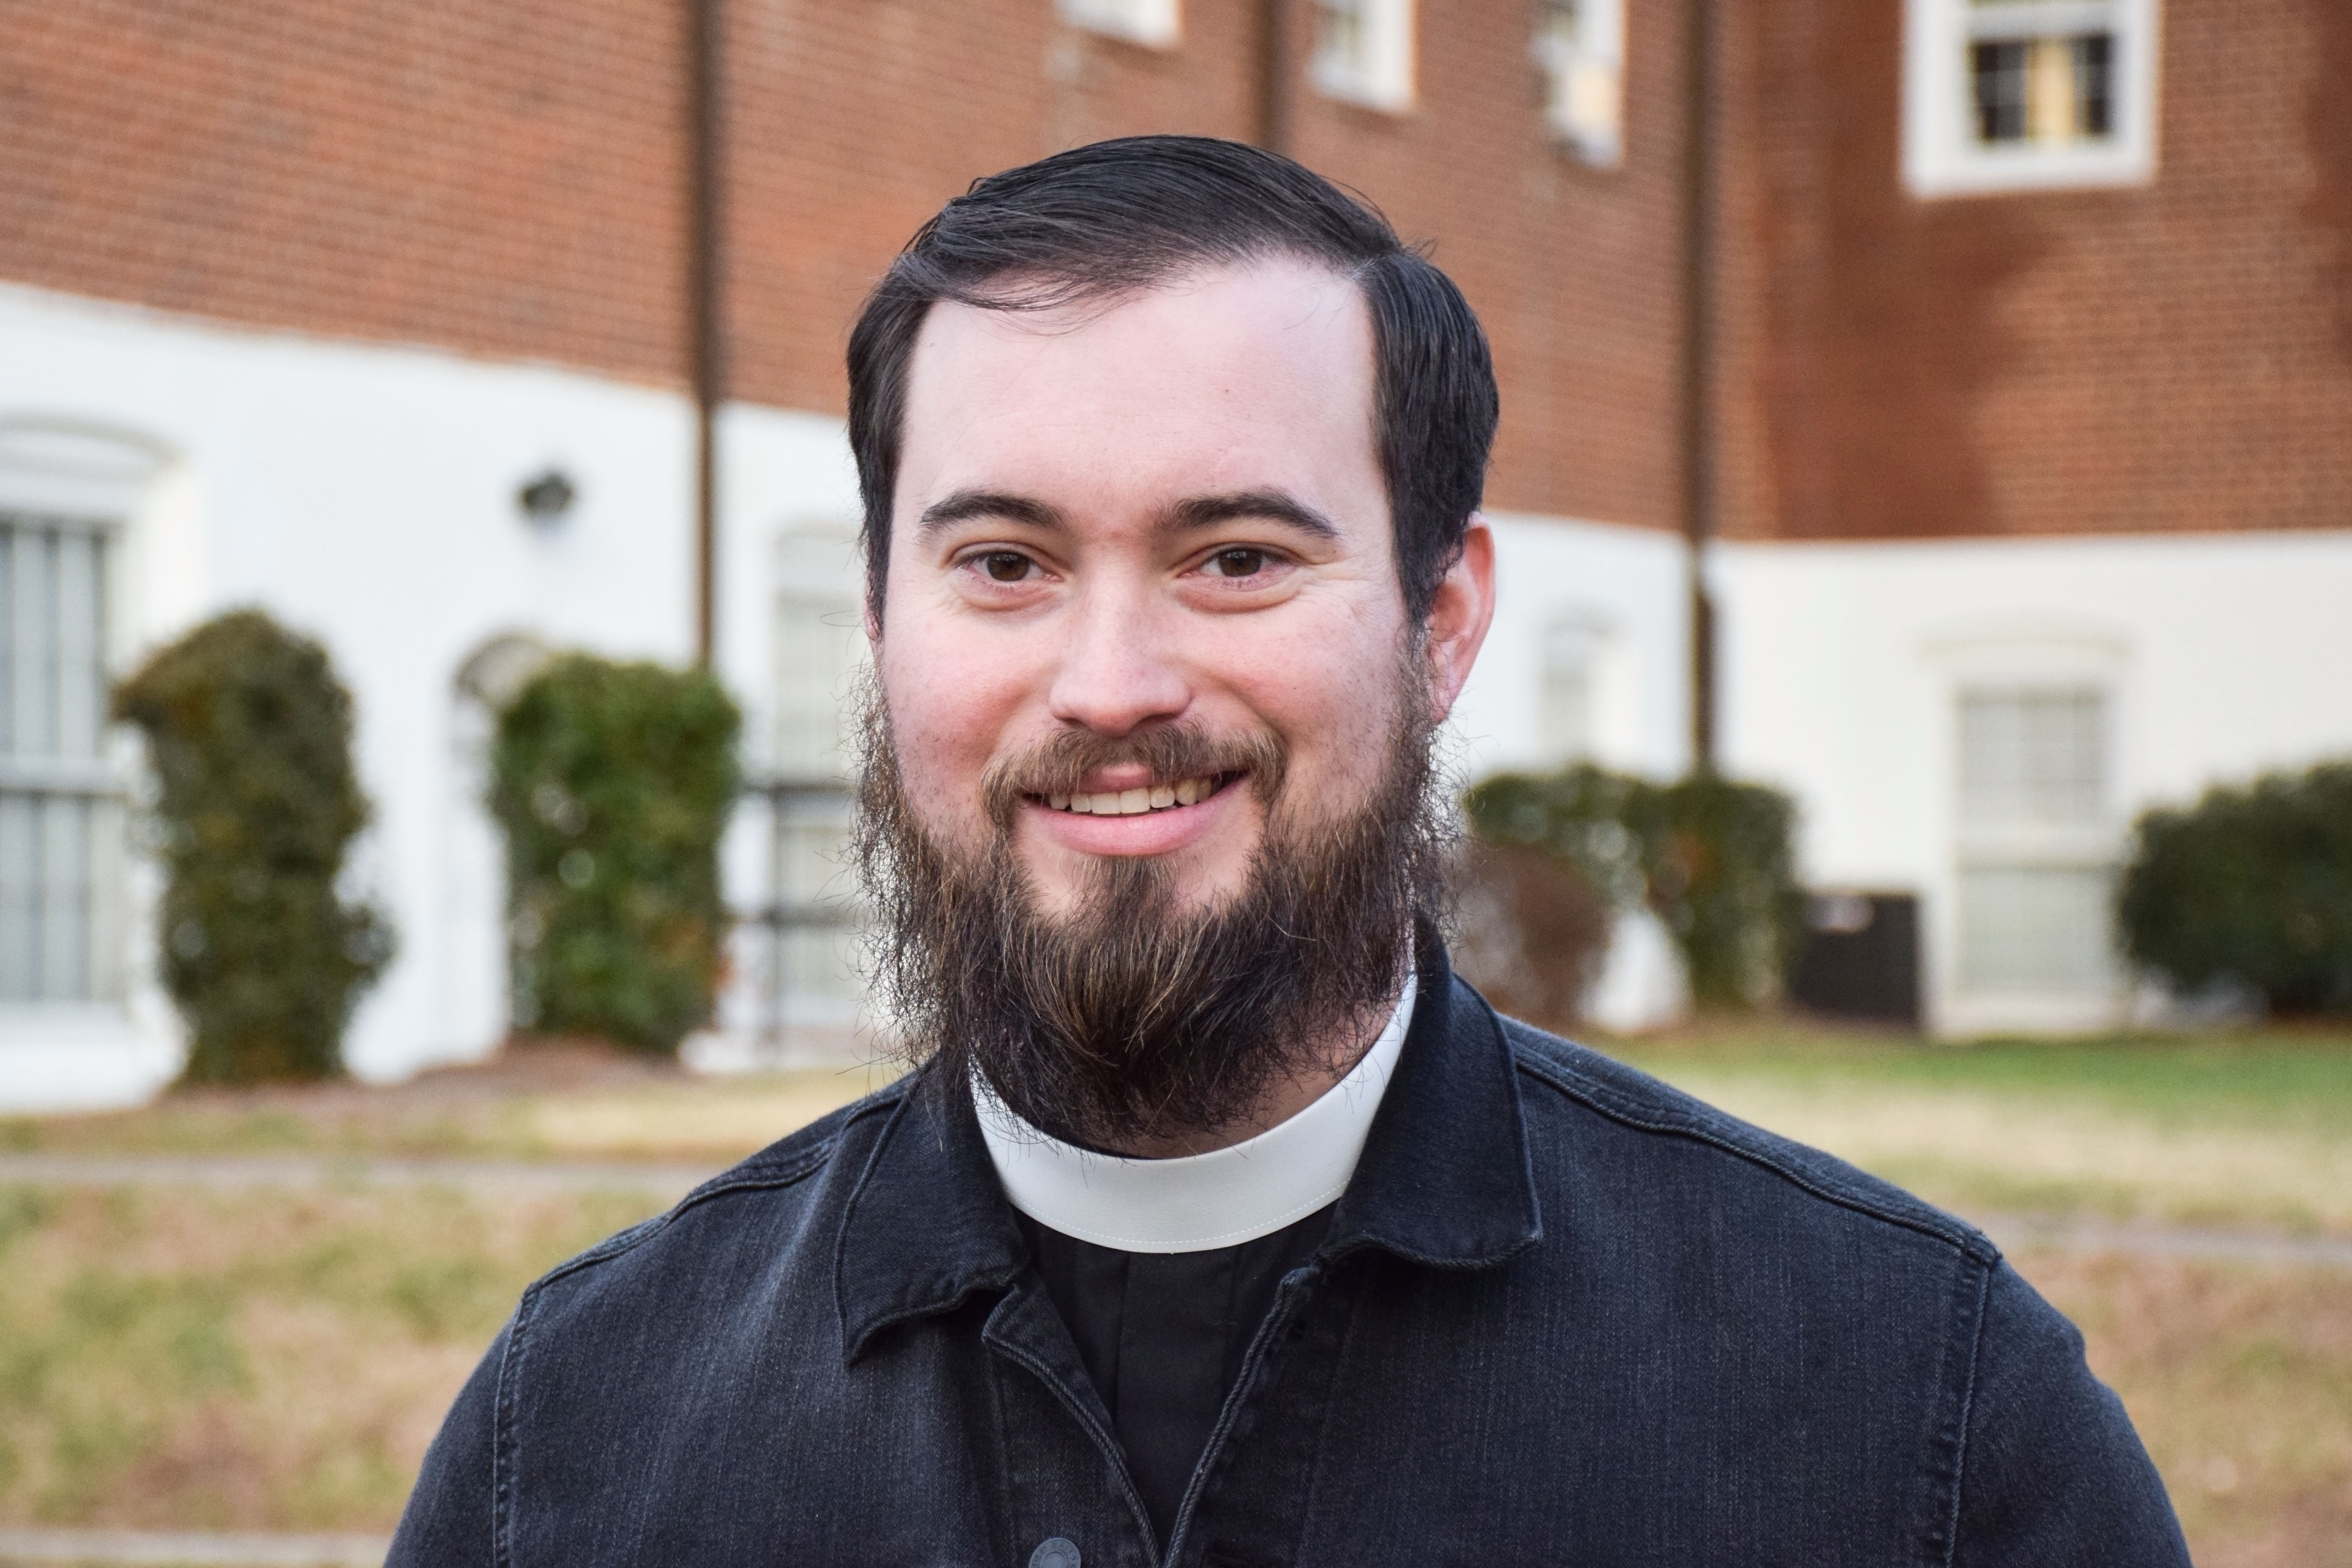 Image of the Rev. Chaz Snider